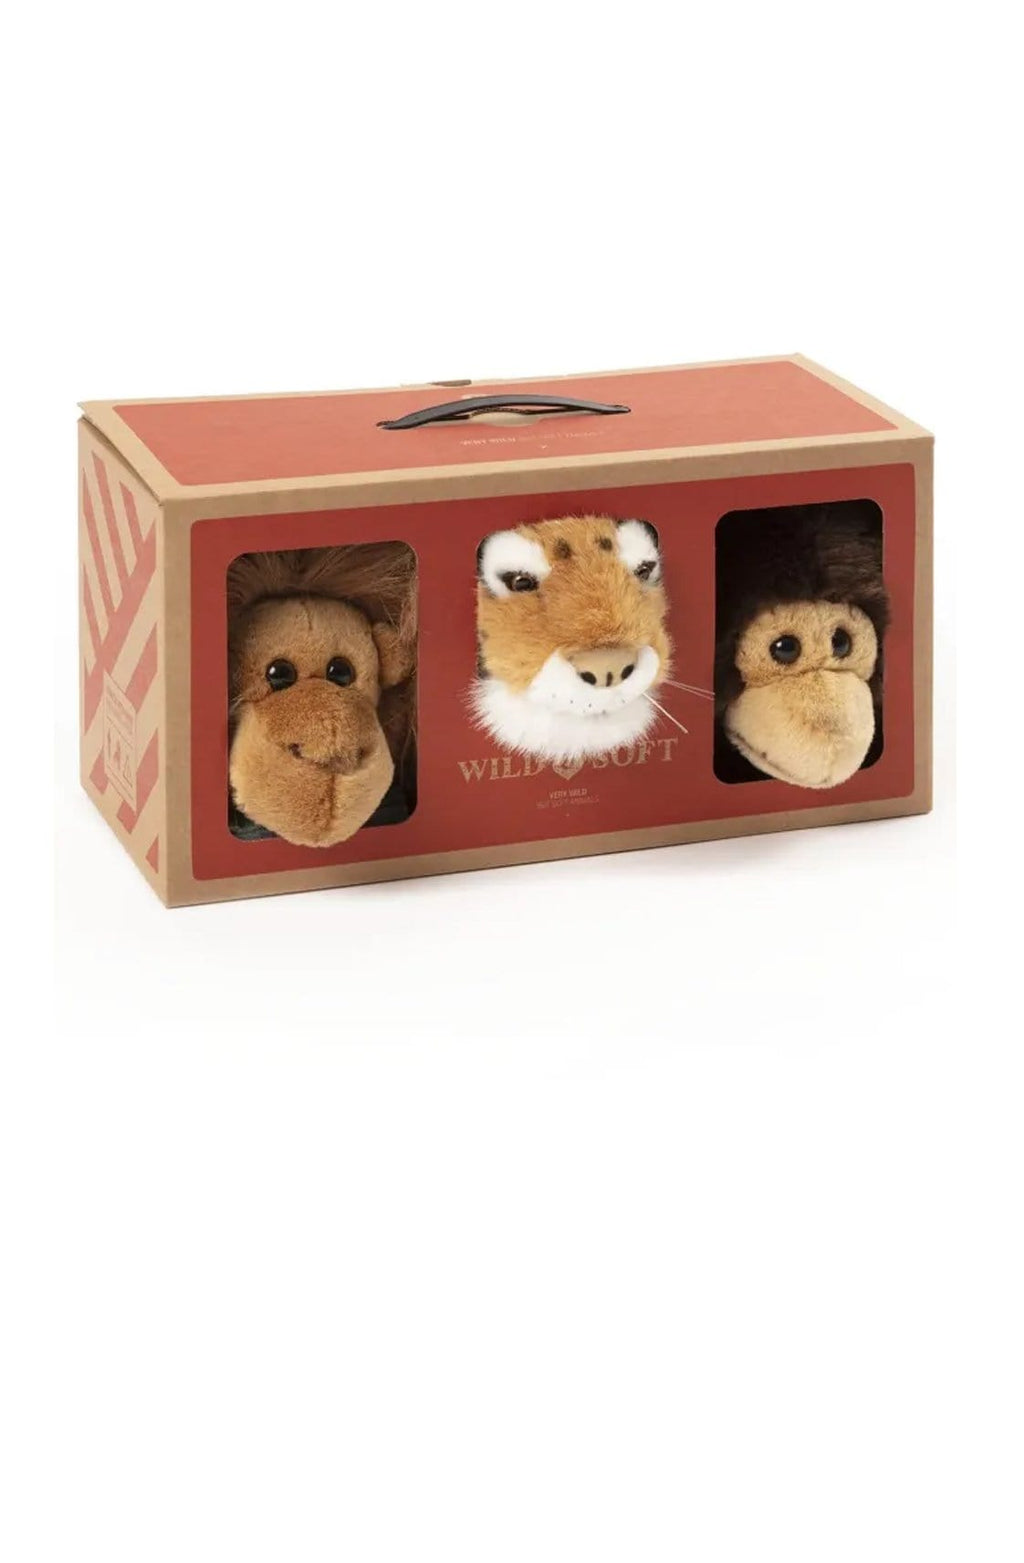 Wild and Soft Jungle Box, Mini Tiger, Monkey & Orang-Utan (PRE-ORDER MARCH) - Hello Little Birdie